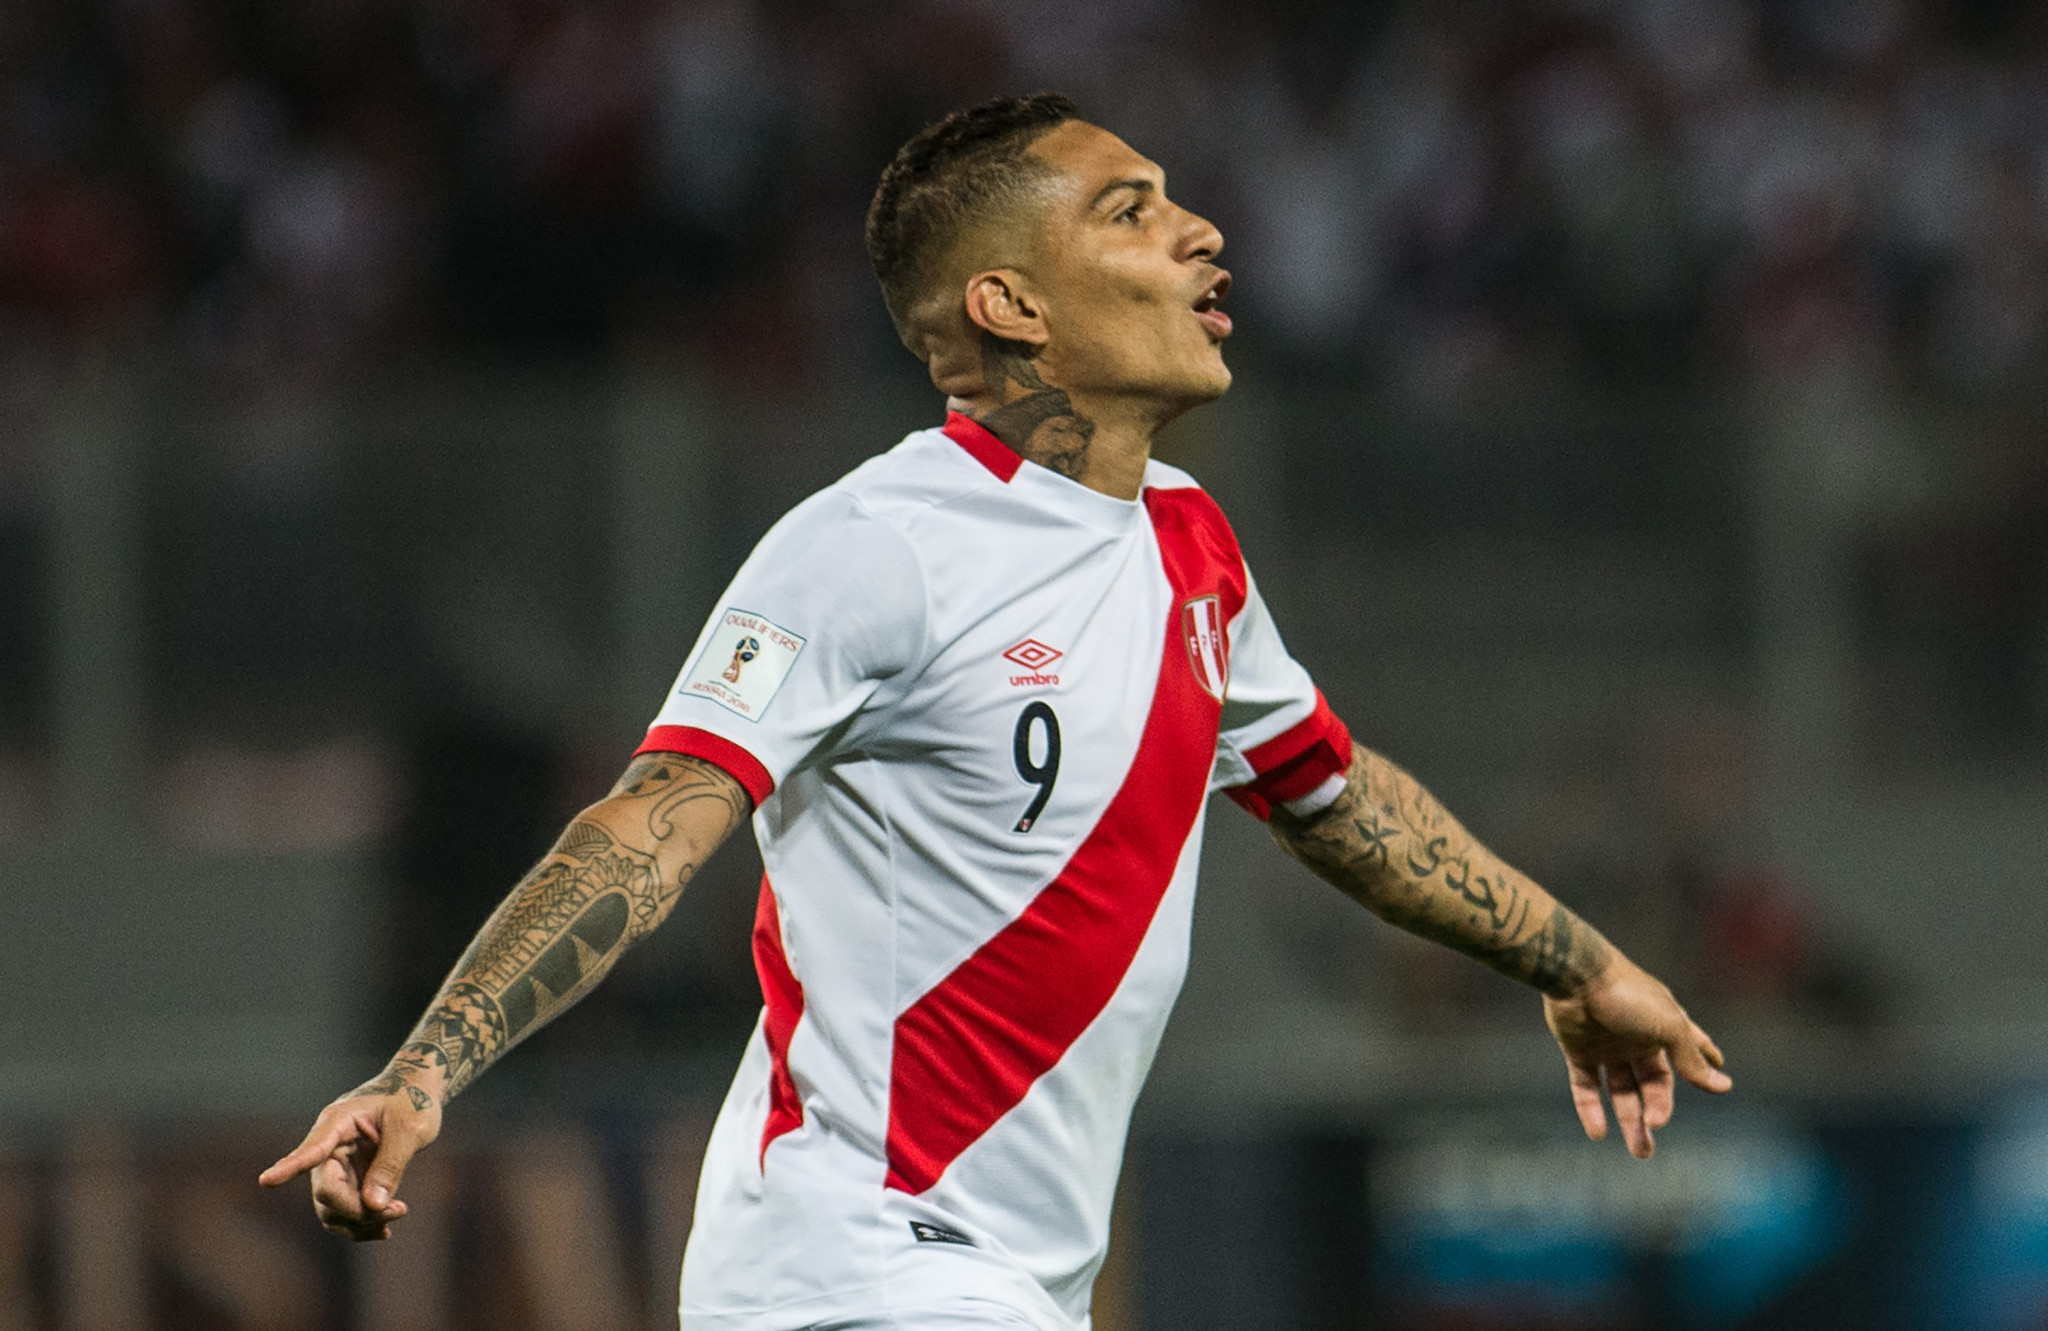 Guerrero testifies at CAS in bid to avoid World Cup drugs ban